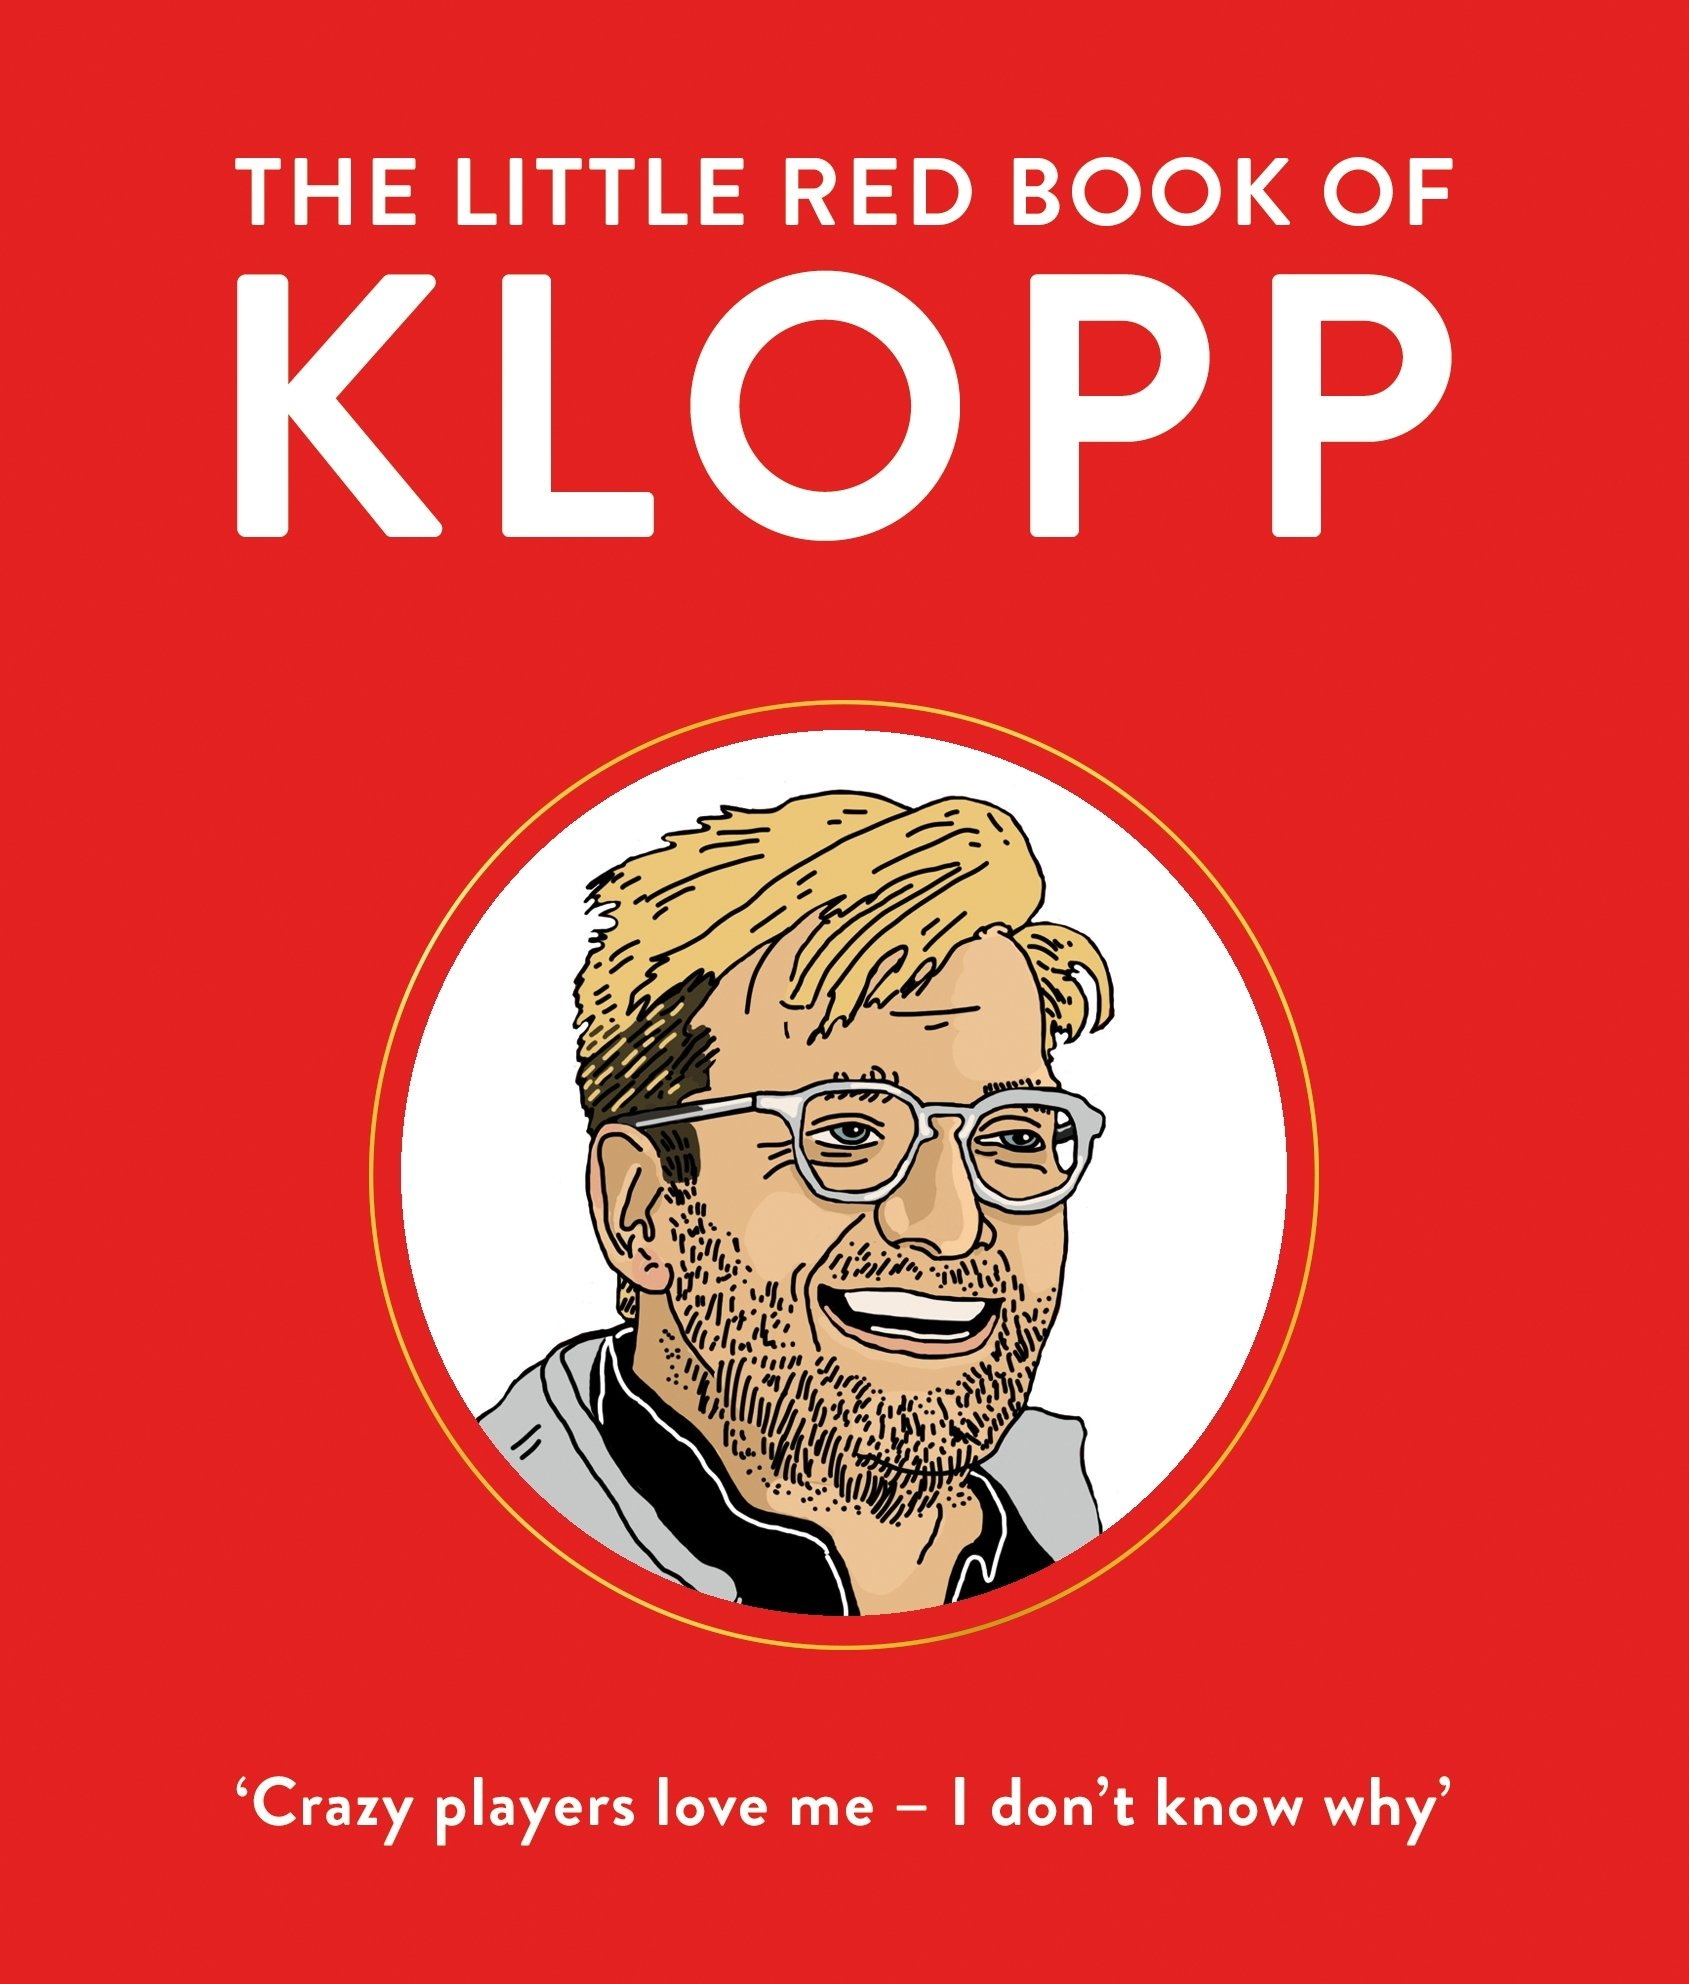 The Little Red Book of Klopp for COVID-19